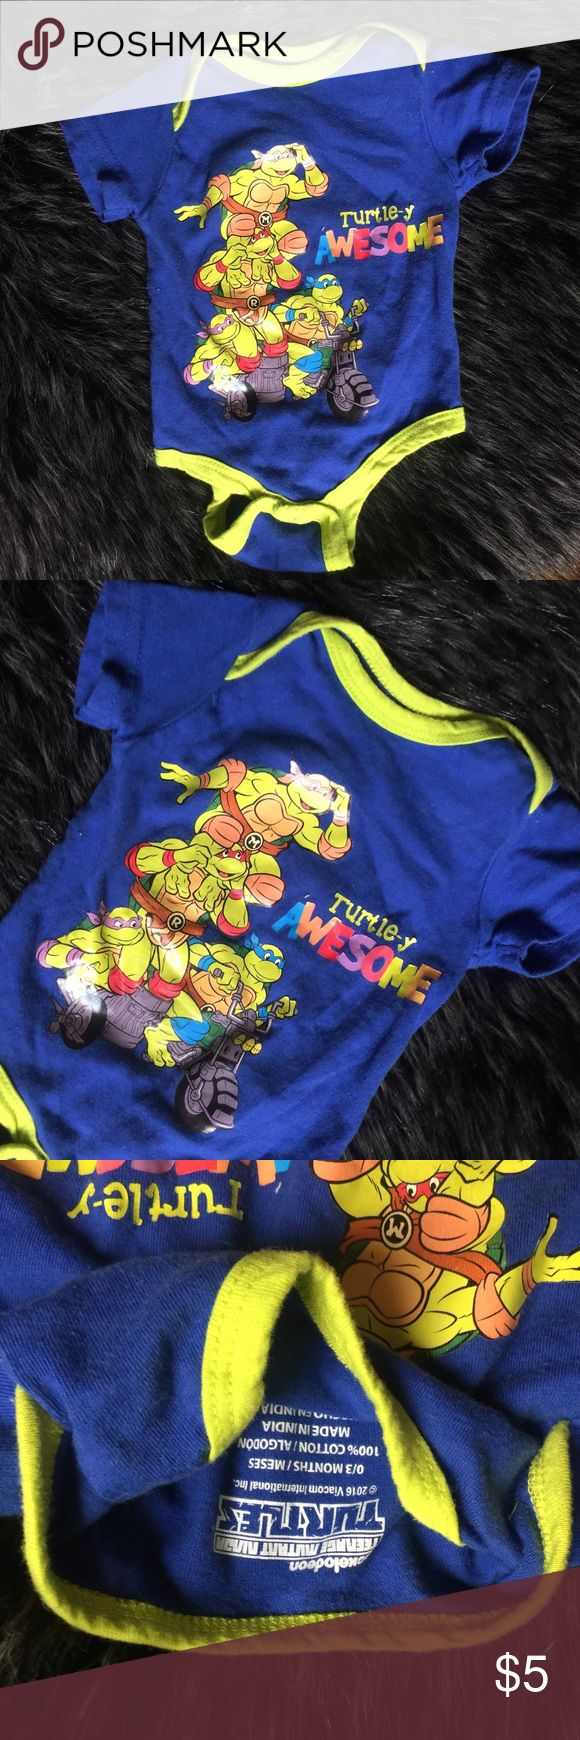 Ninja Turtles Onesie 0 to 3 month percent cotton baby onesie. Ninja turtles officially licensed through nickelodeon. Worn once washed once. Super soft and cute. No trades. Ships within 24 hours. One Pieces Bodysuits